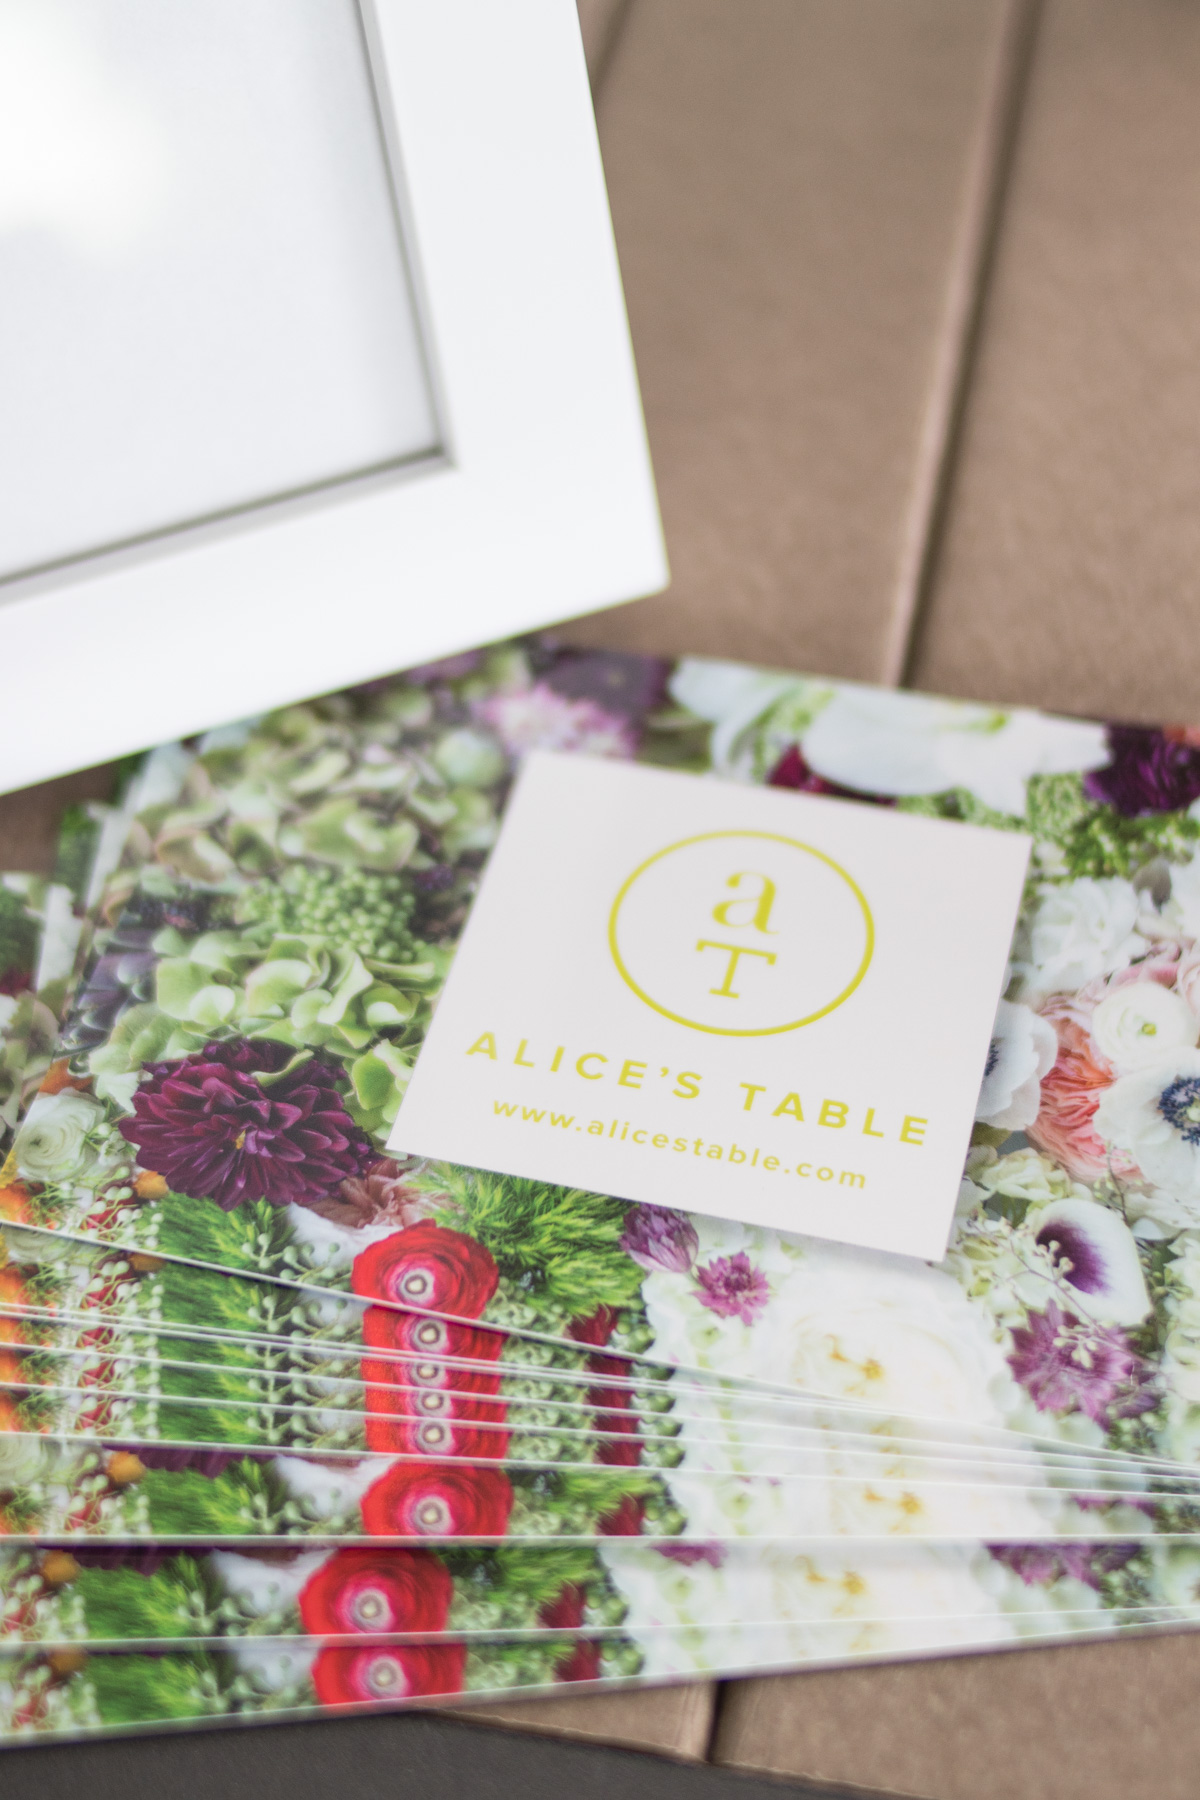 postcards with Alice's Table logo and website